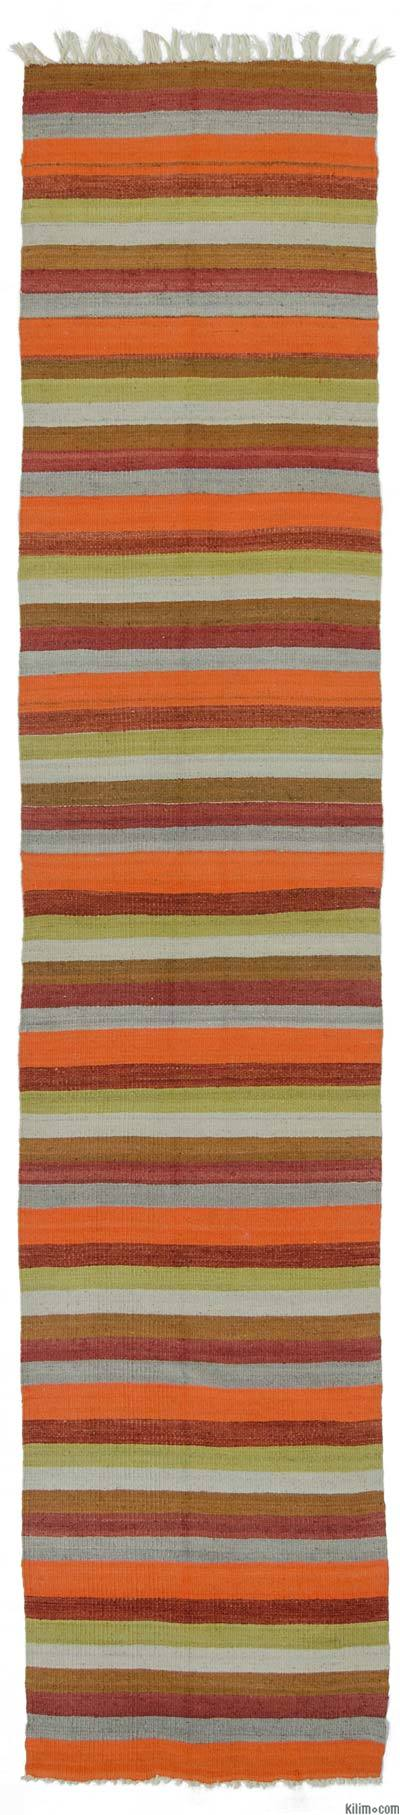 "Vintage Turkish Kilim Runner - 2'2"" x 10'10"" (26 in. x 130 in.)"